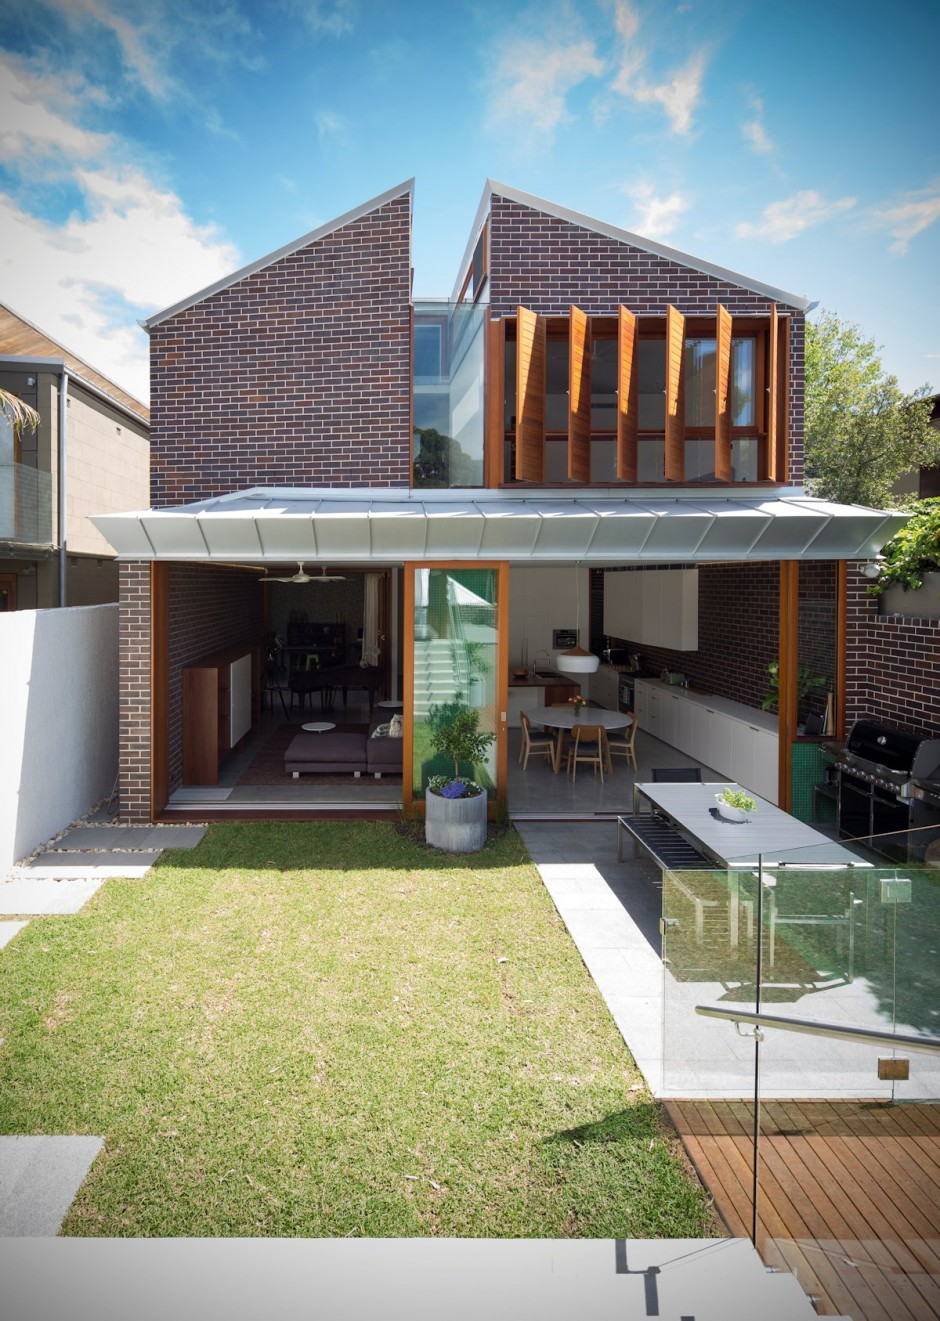 Compact-home-back-of-the-house